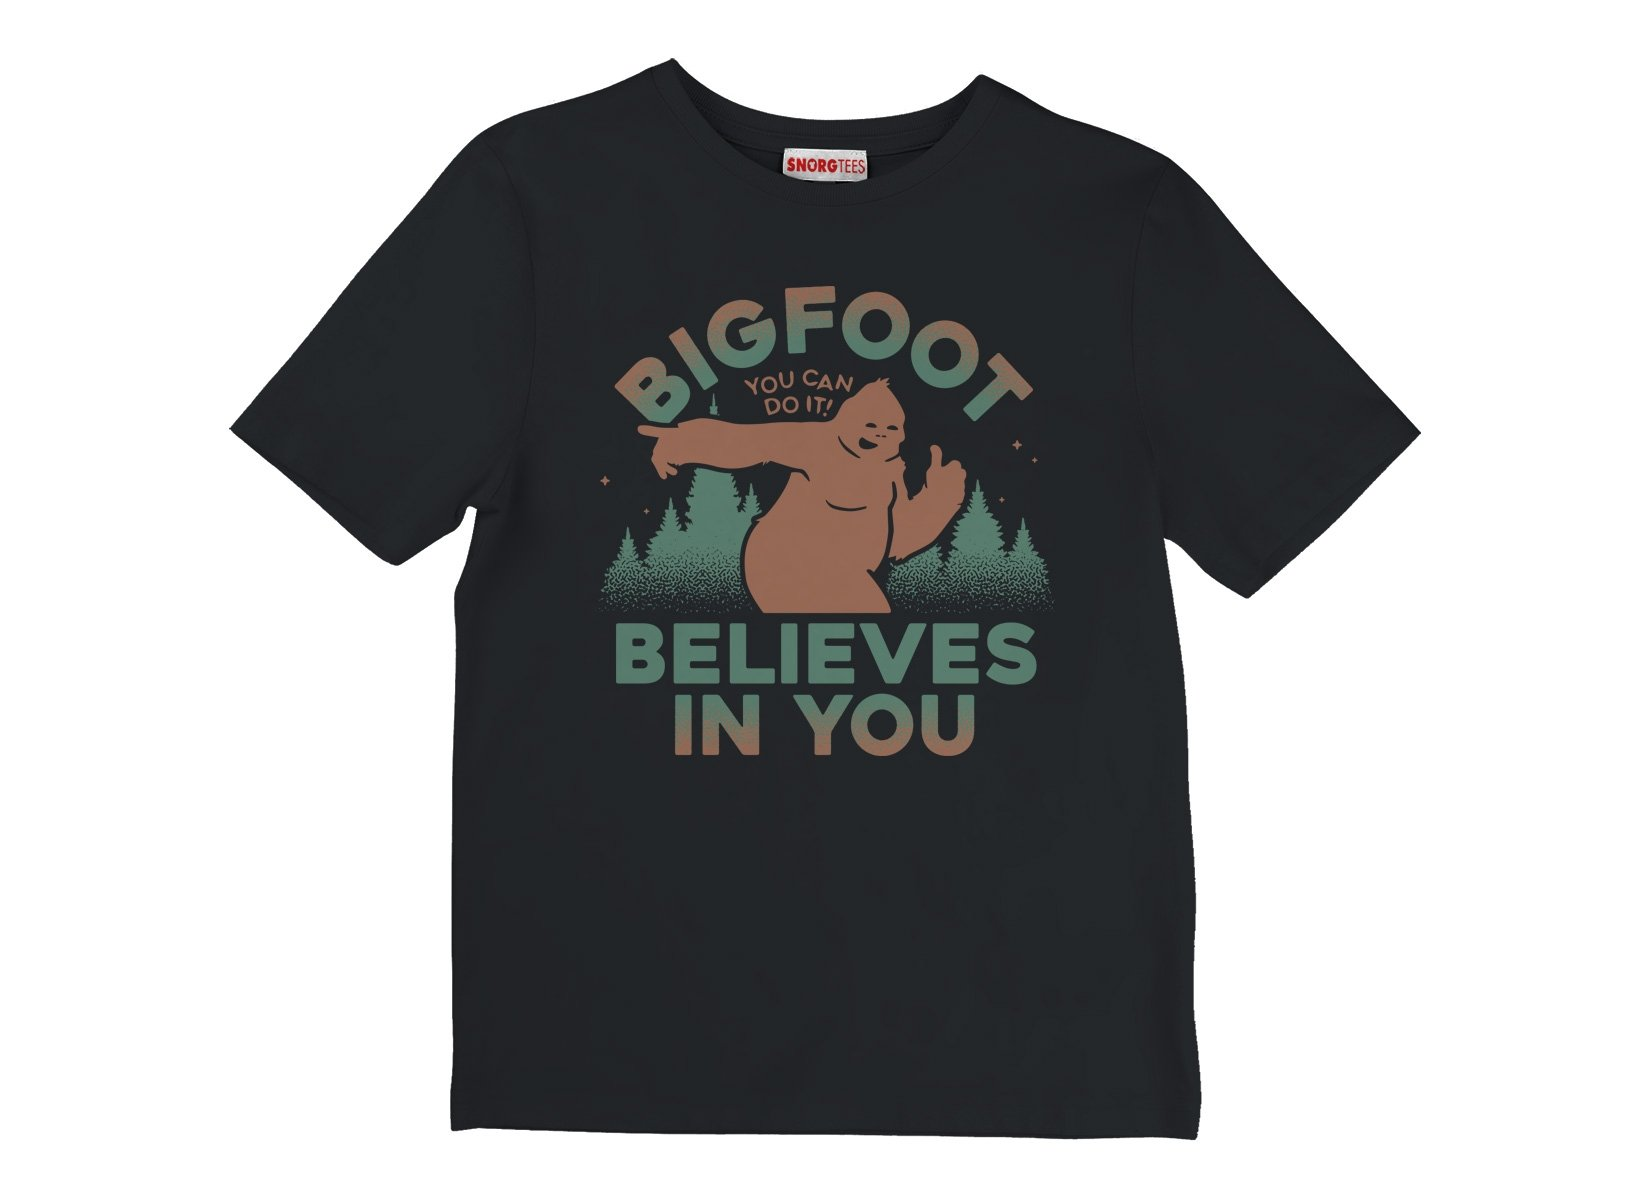 Bigfoot Believes In You on Kids T-Shirt